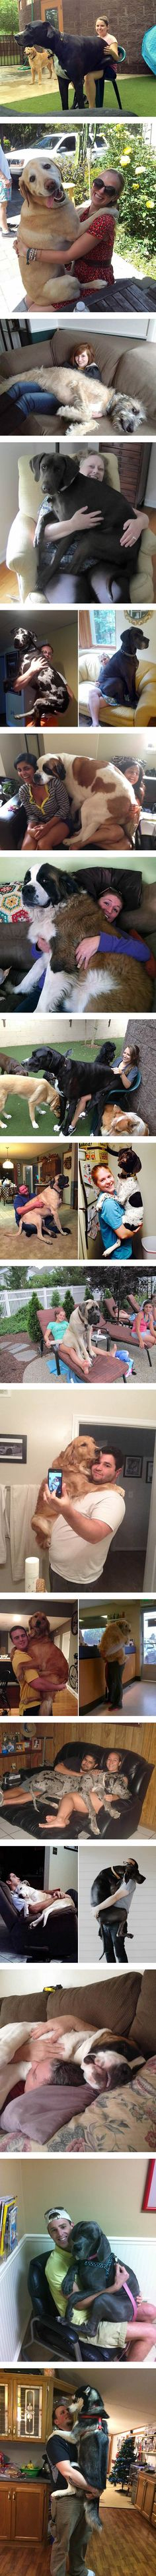 Big Dogs Who Think They're Lap Dogs